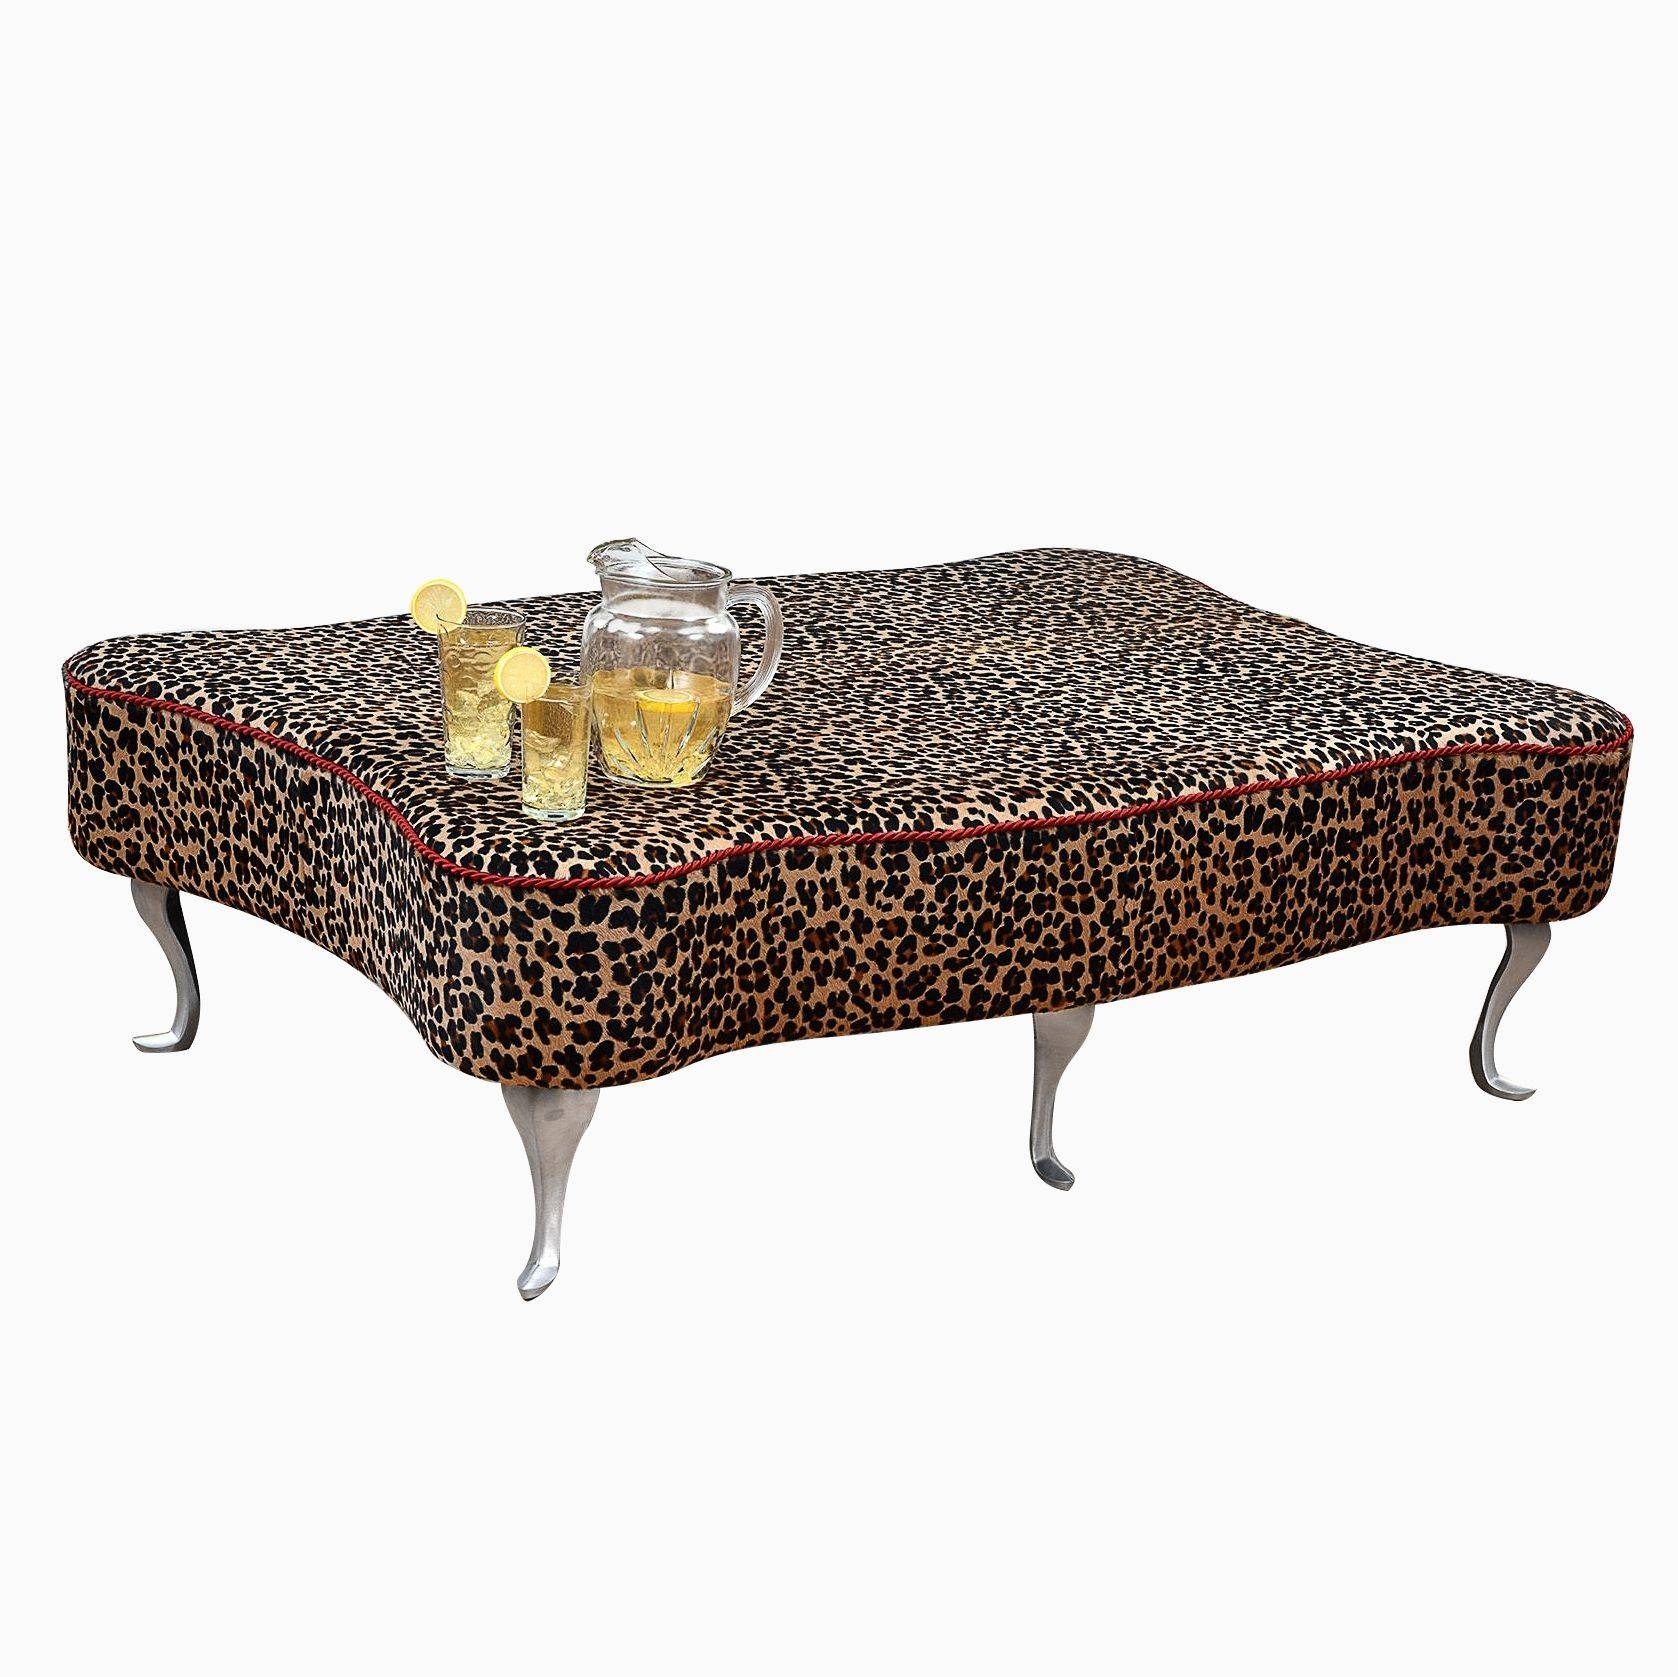 Buy A Custom Leopard Leather Hair-On-Hide Ottoman Coffee Table within Leopard Ottoman Coffee Tables (Image 5 of 30)